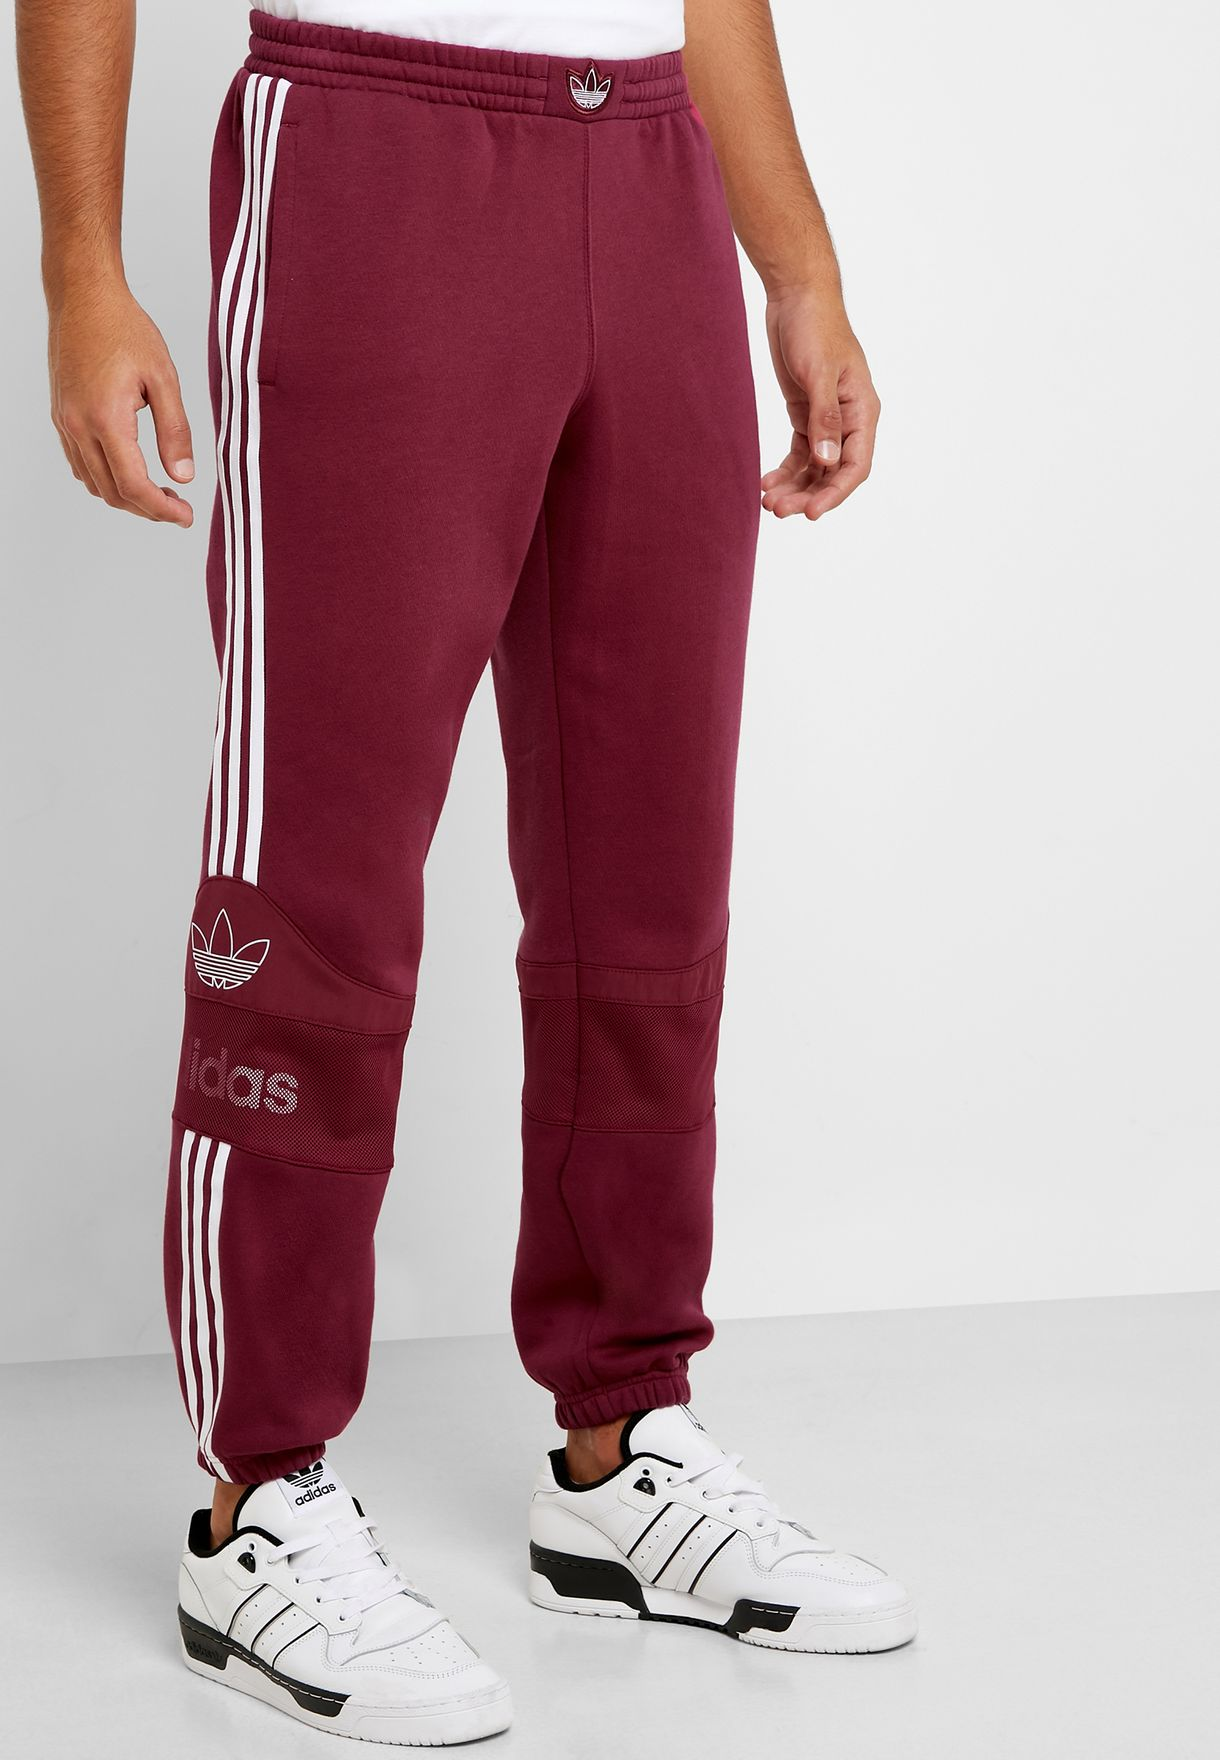 Trefoil Sweatpants